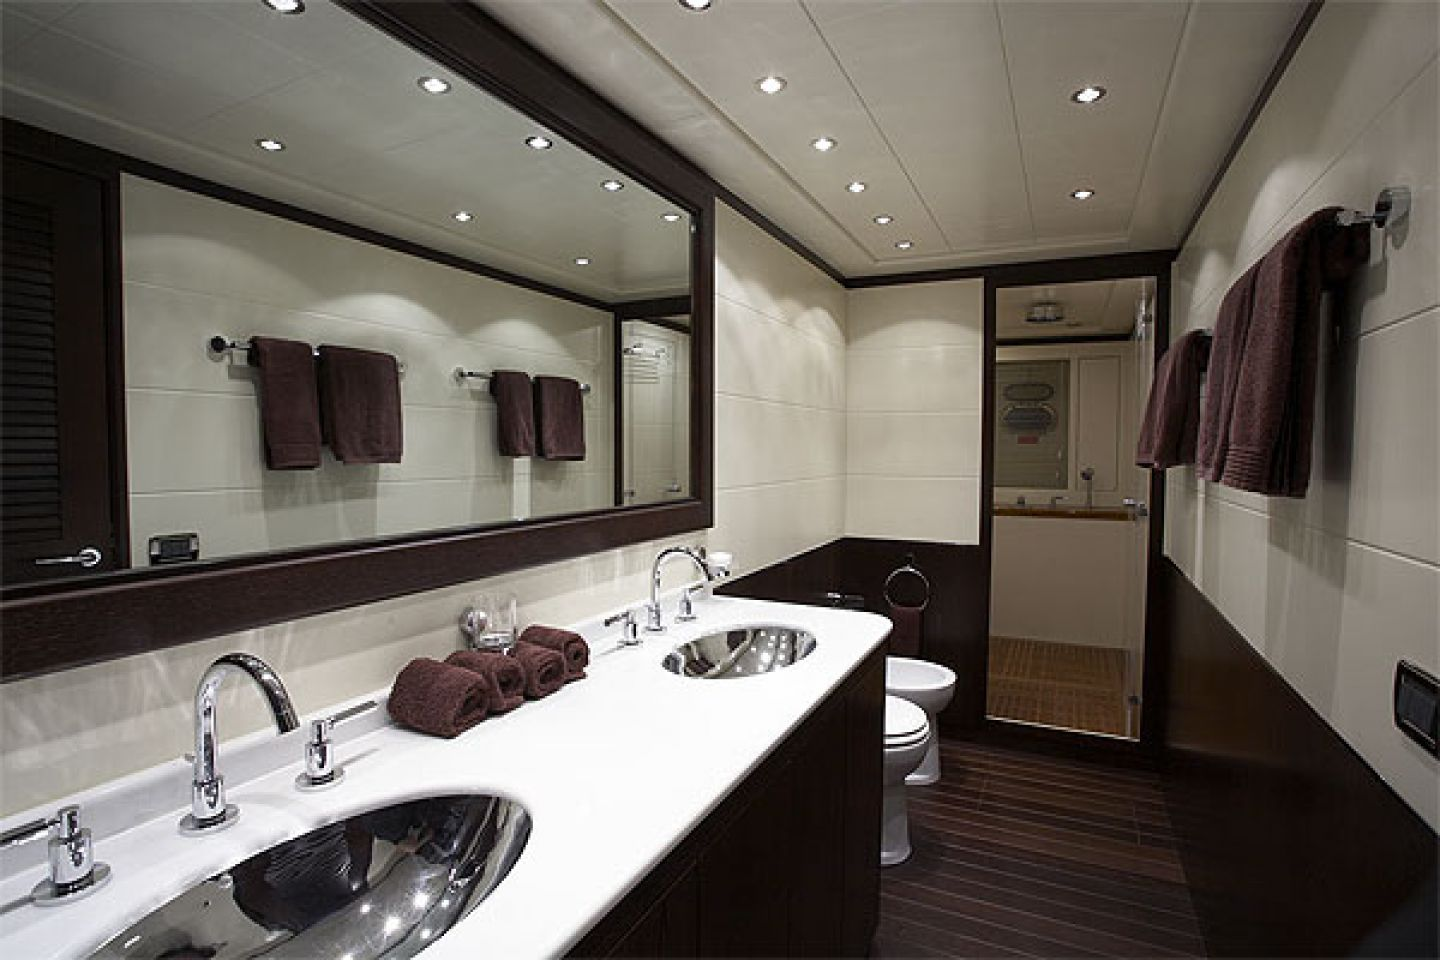 Black and White Small Bathroom with Simple Bathroom Star Ceiling Decor